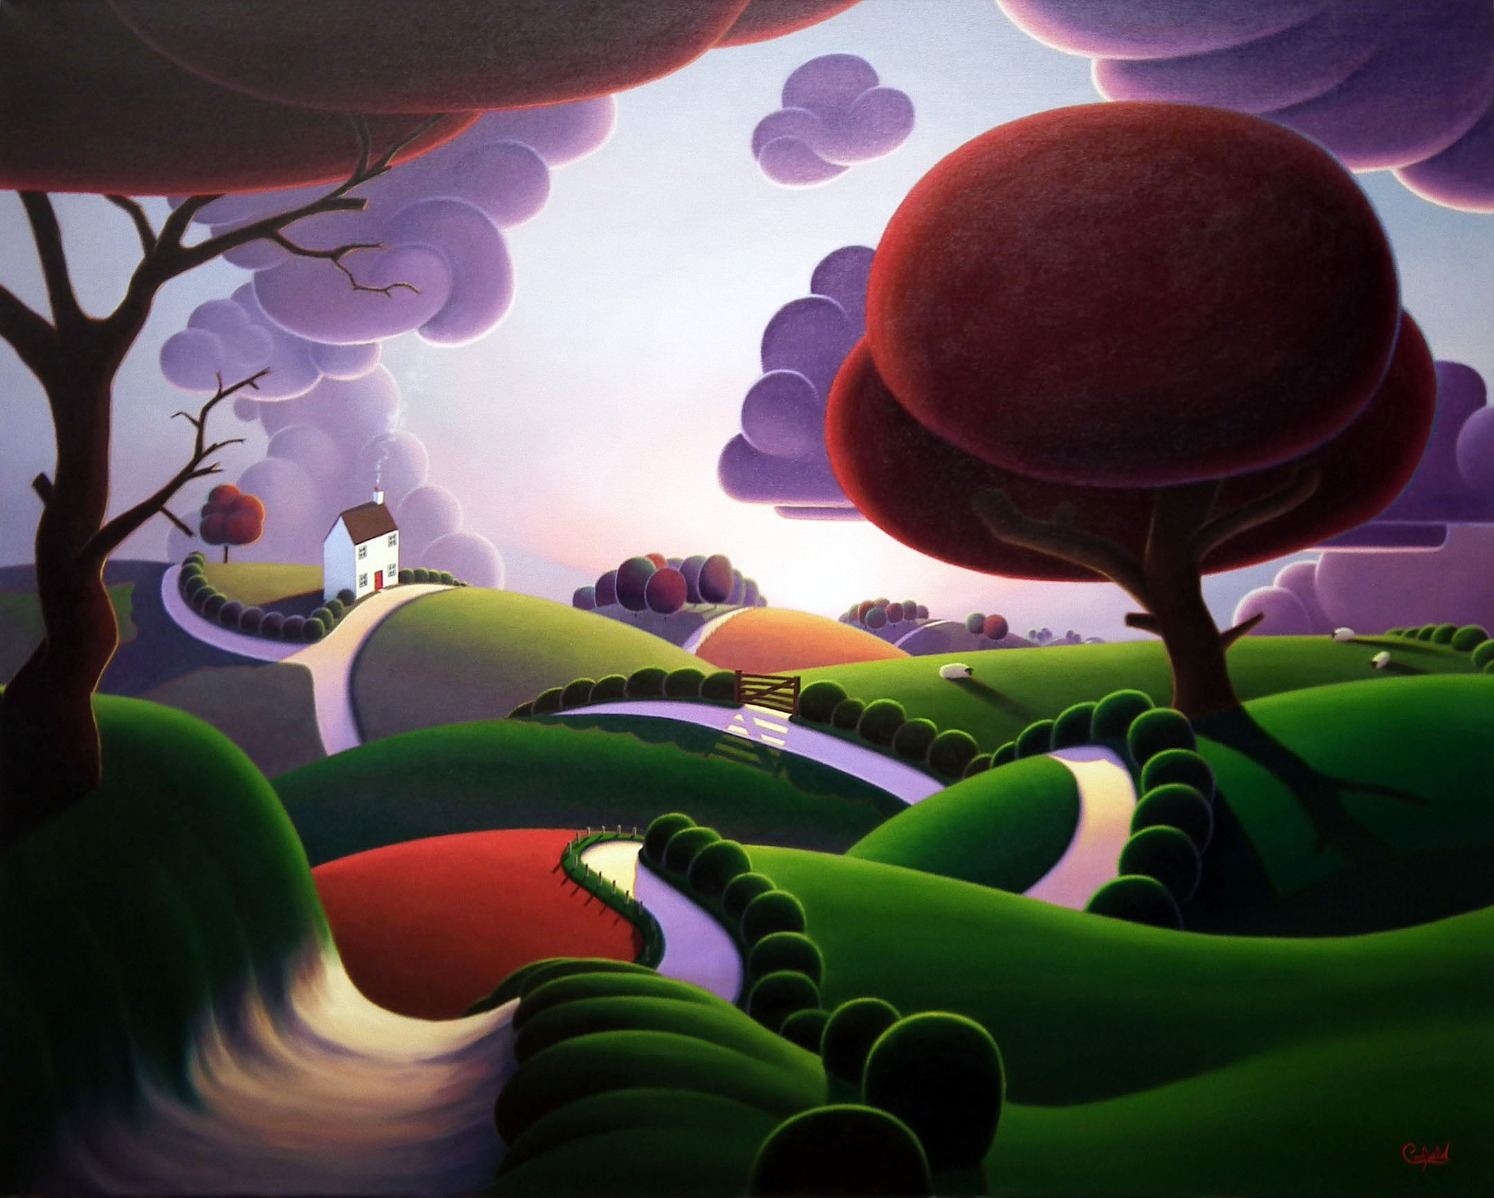 Over the Hills and Far Away by Paul Corfield, Landscape | Naive